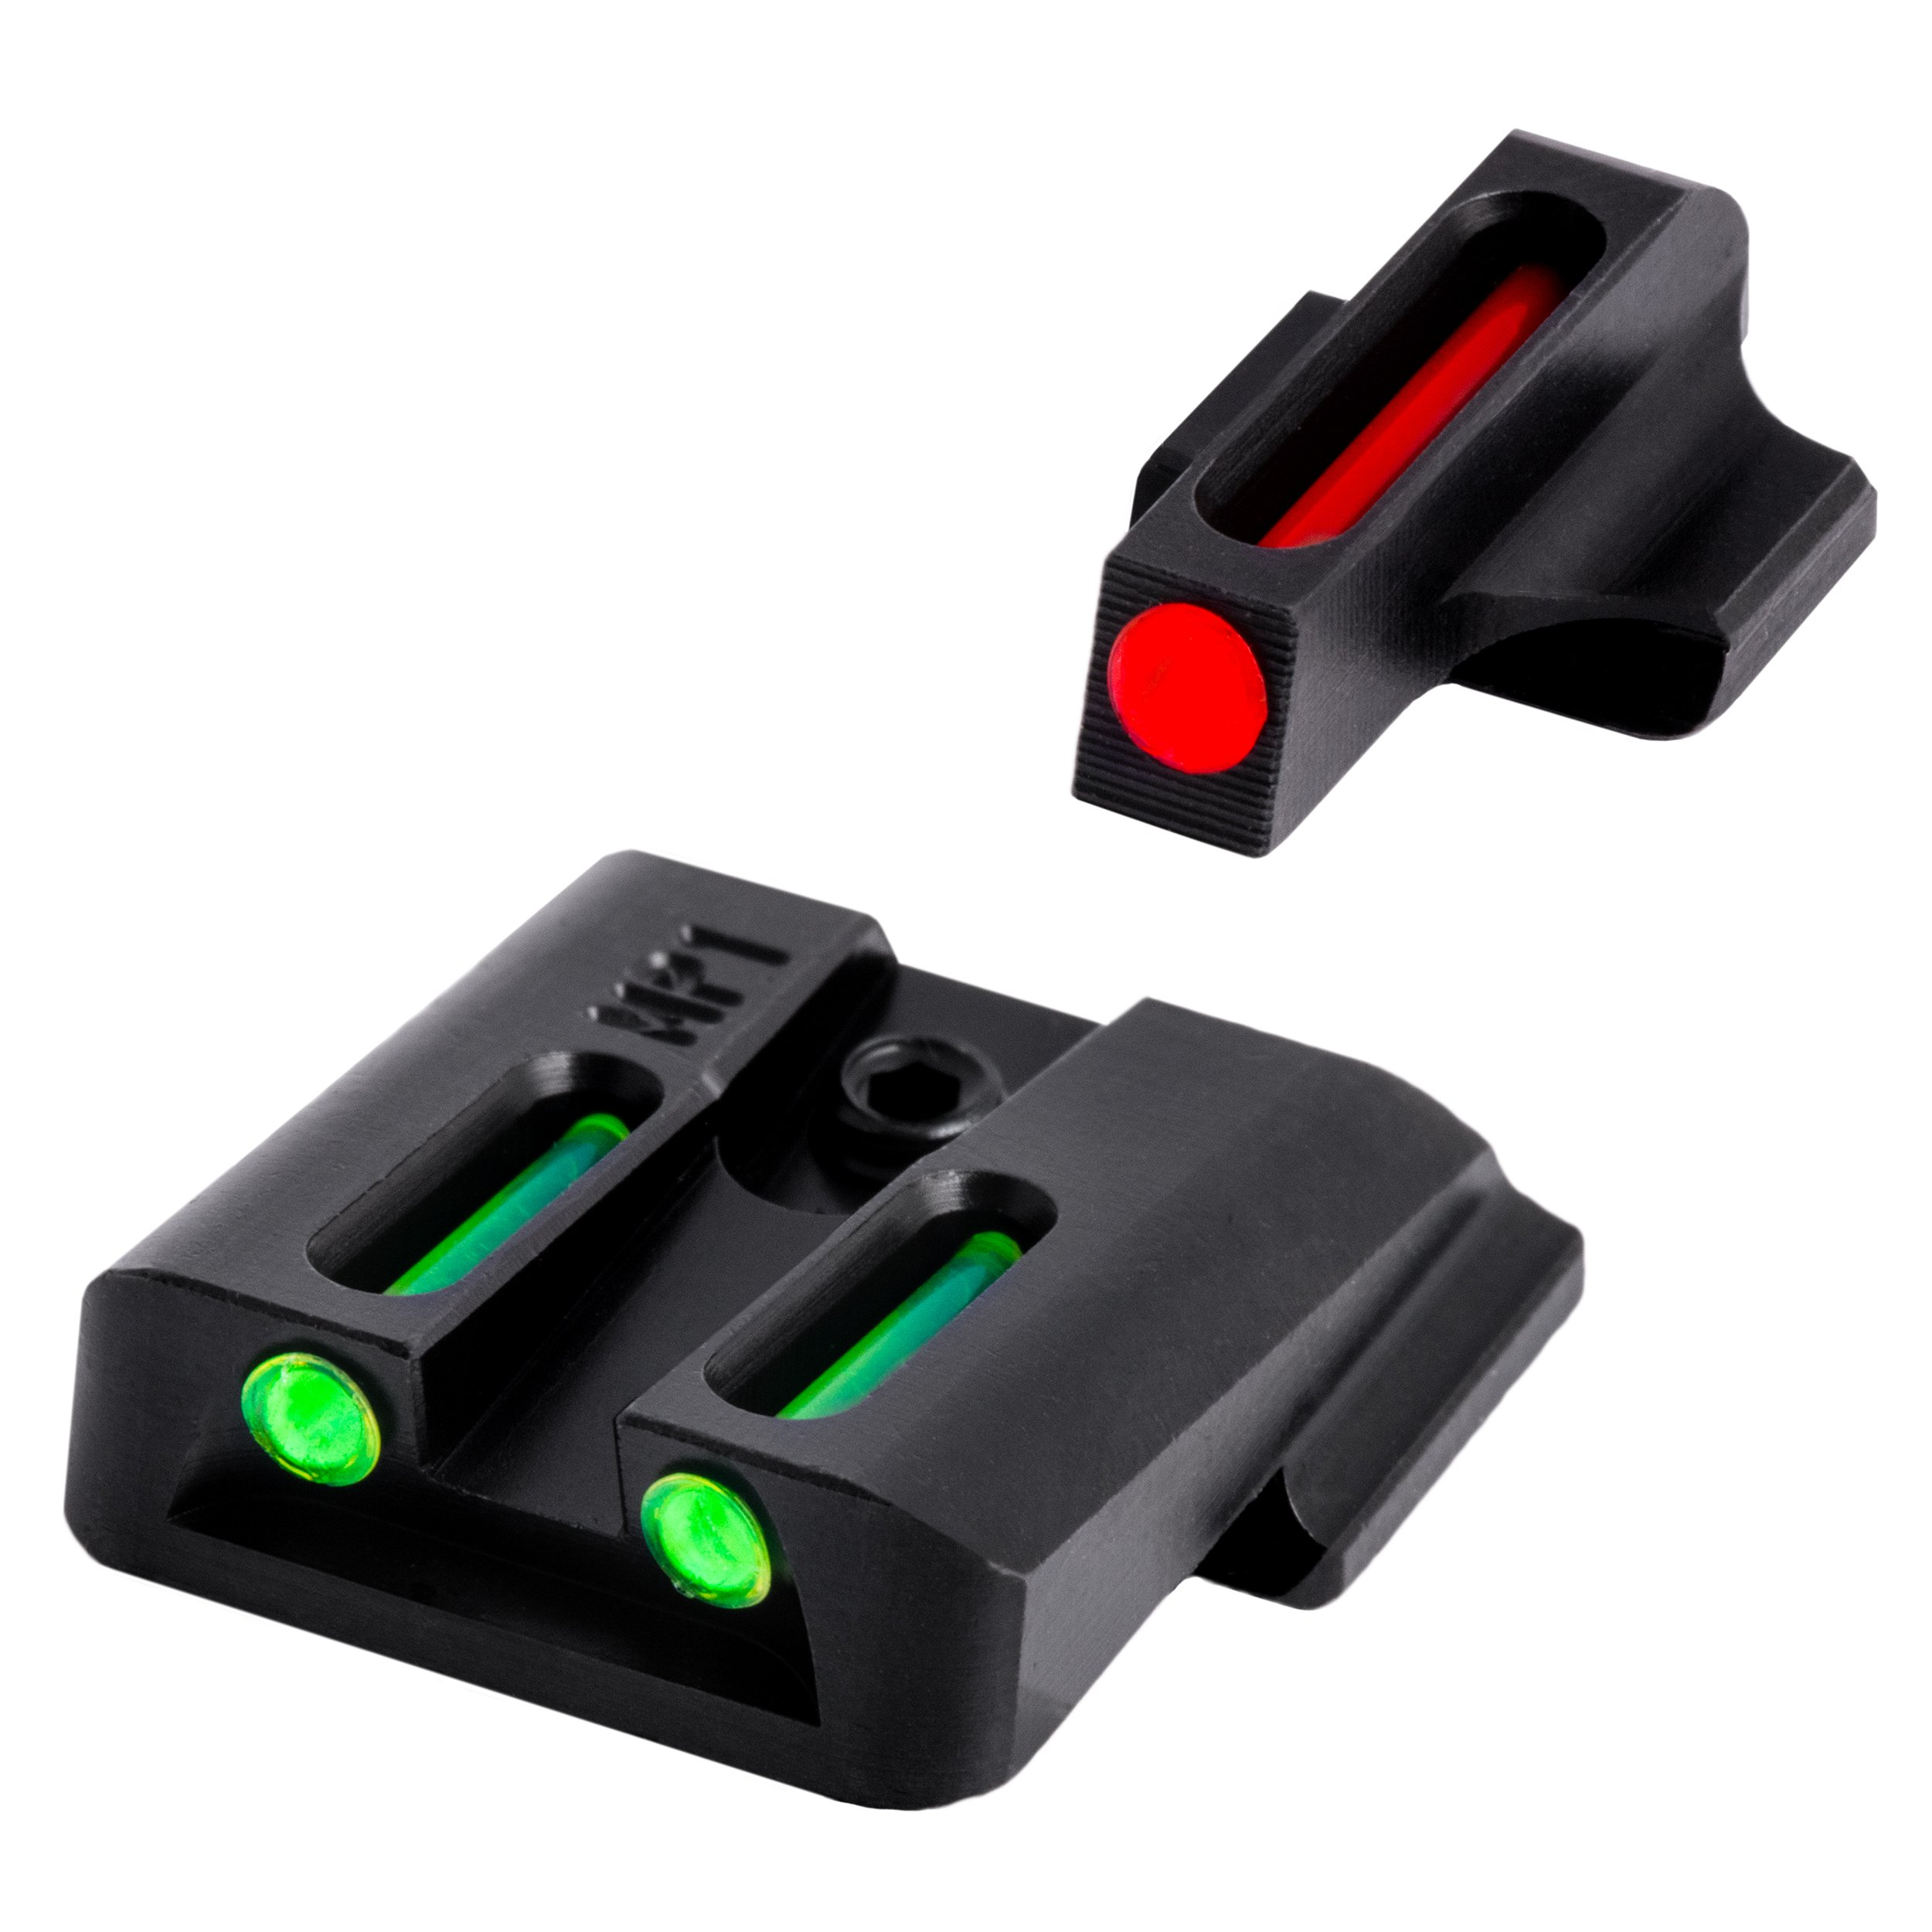 TRUGLO Fiber-Optic Front and Rear Handgun Sights for Smith & Wesson M&P Pistols, S&W M&P (Including Shield & .22 Models, excluding .22 Compact/C.O.R.E. Models) SD9 and SD40 (excluding VE Models) by TRUGLO